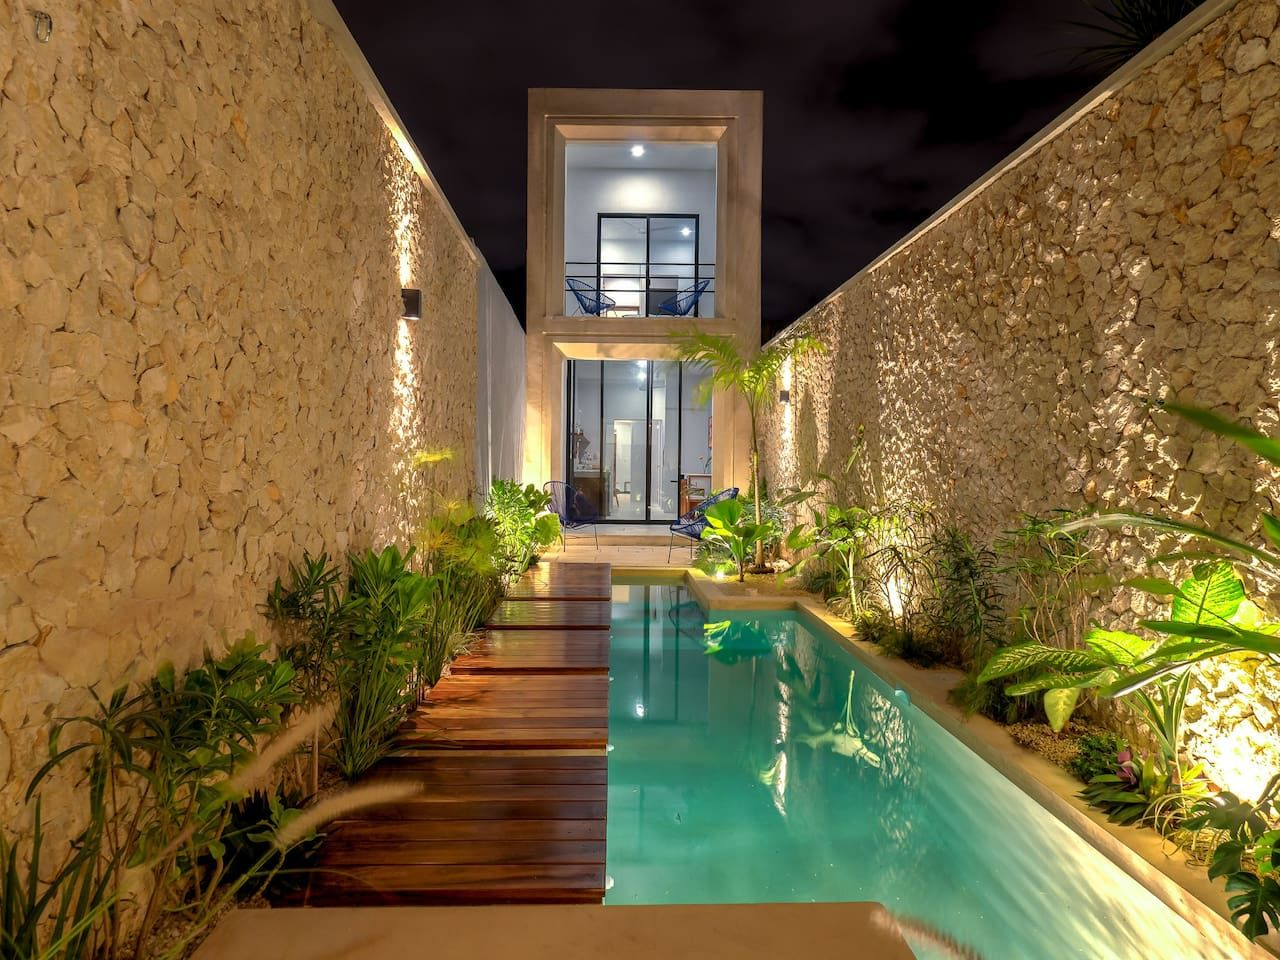 Casa Picasso Gorgeous Home Top Location Houses For Rent In Centro Yucatán Mexico Luxury Pool House Pool House Designs Small Backyard Pools